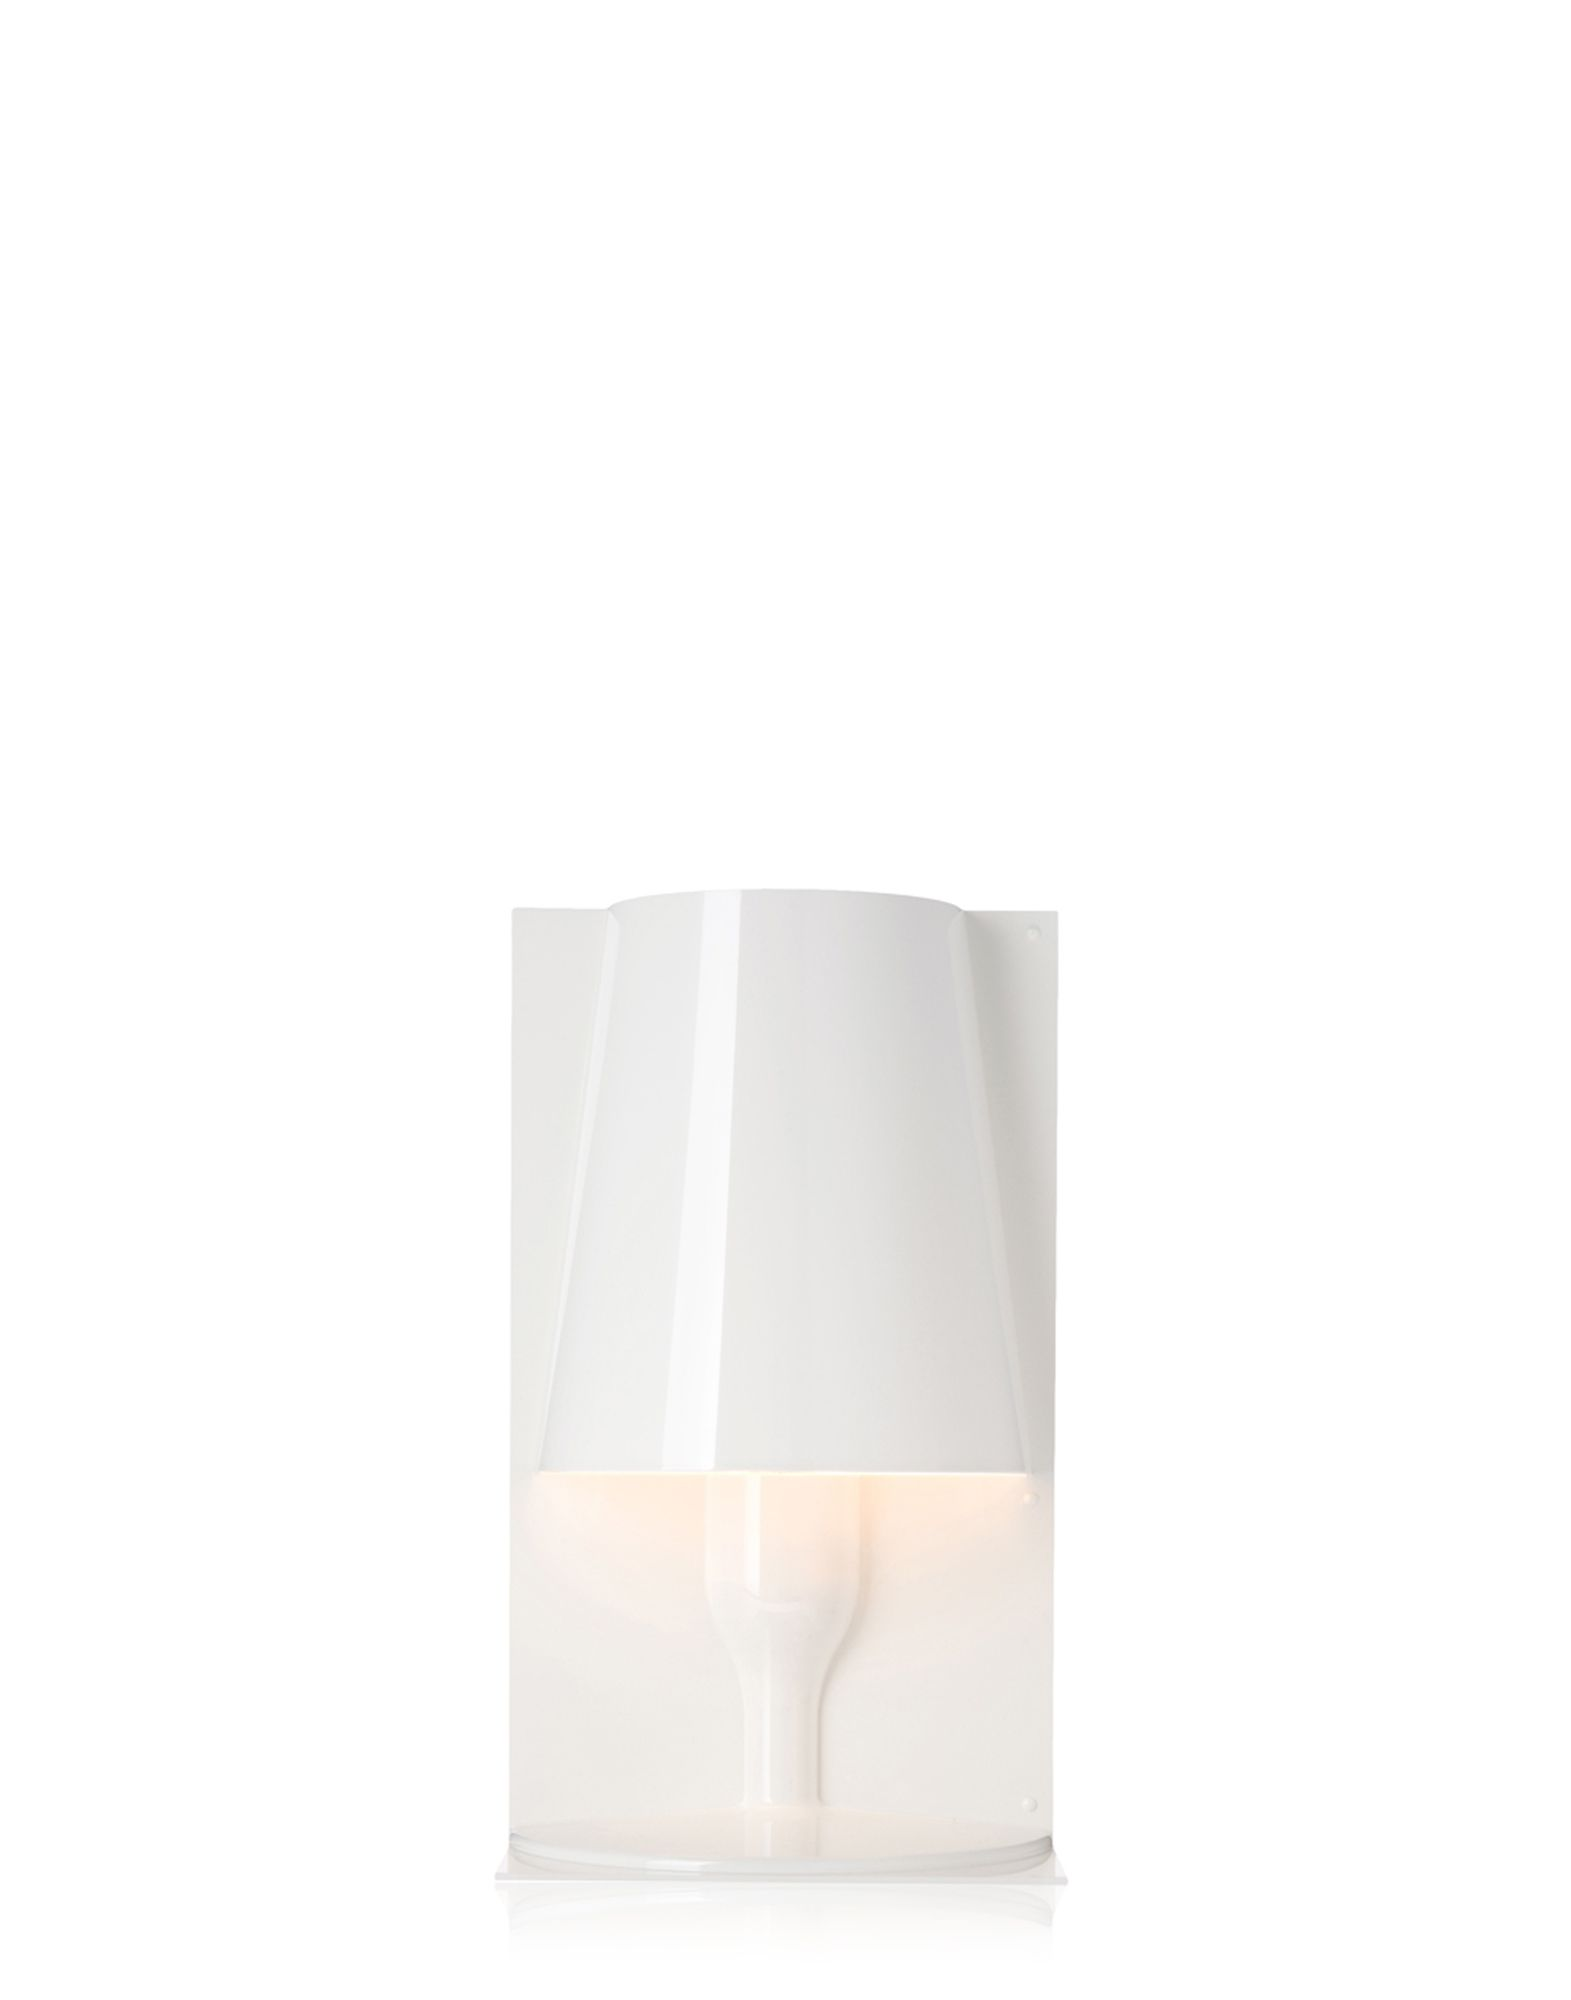 Kartell table lamp 9050 Take white